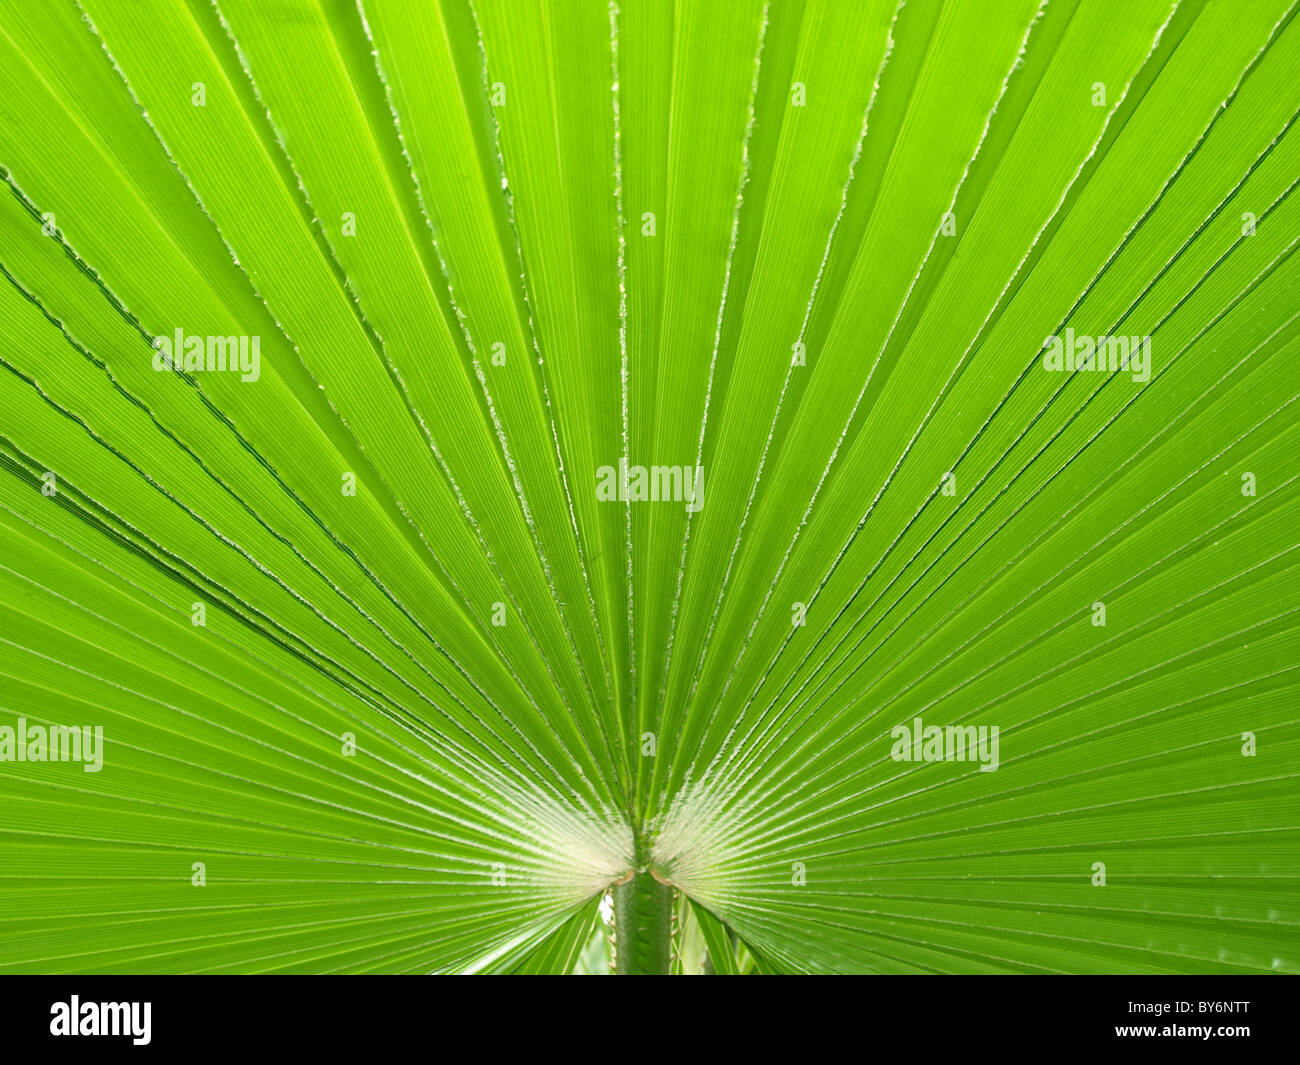 green sheet background - Stock Image